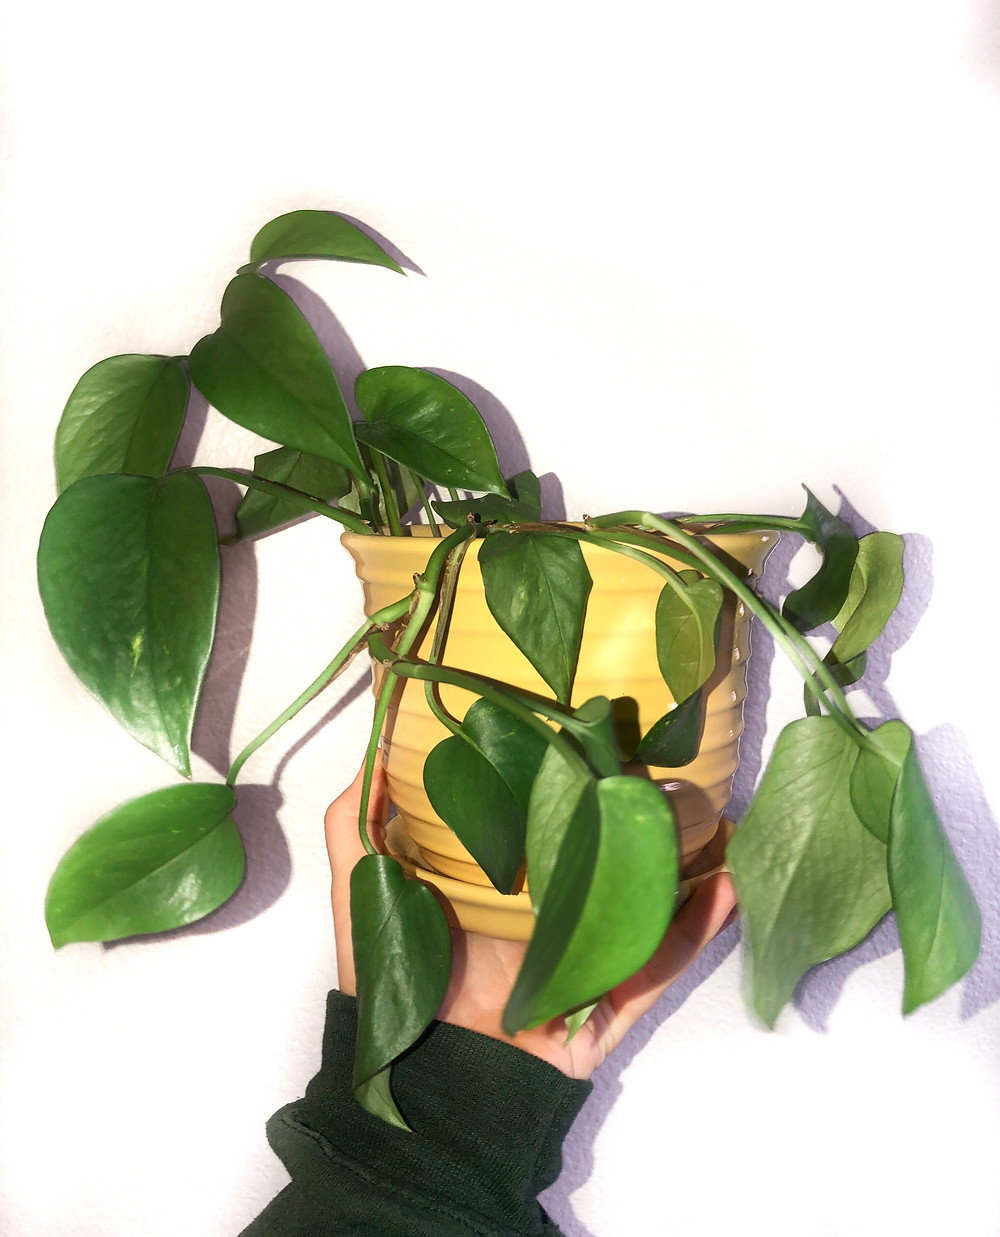 droopy pothos leaves